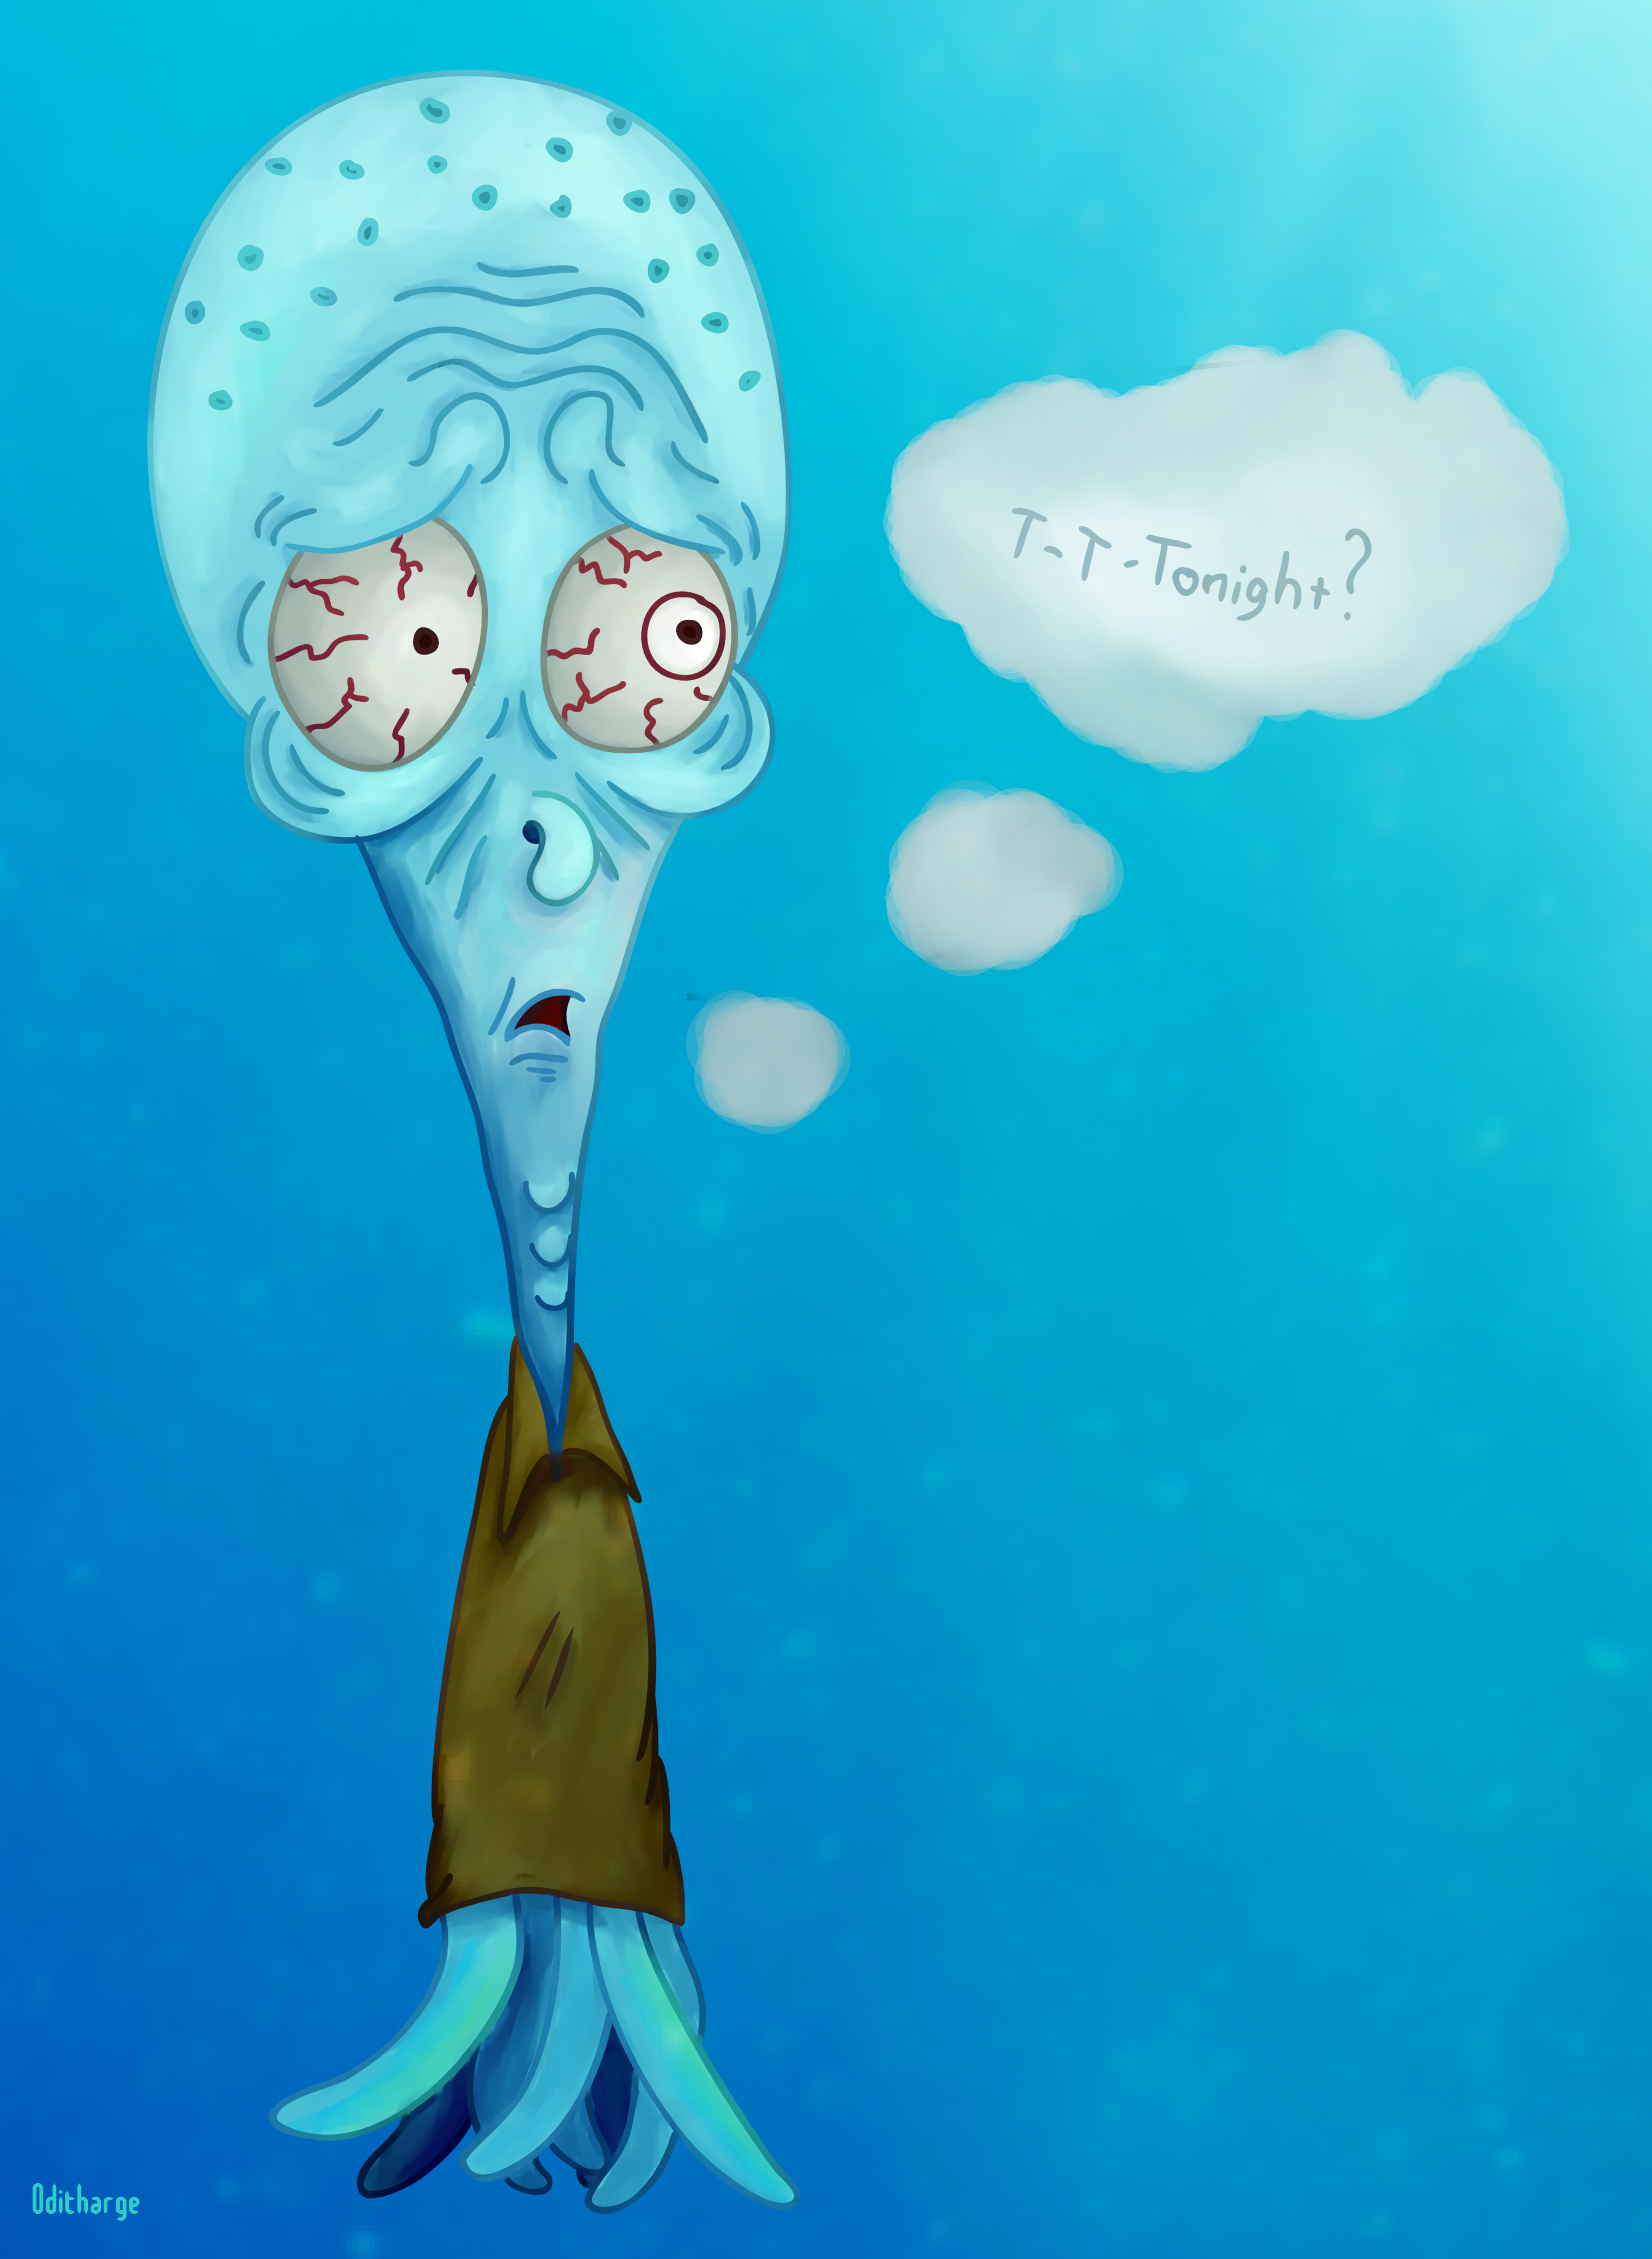 T-t-tonight? (Squidward)